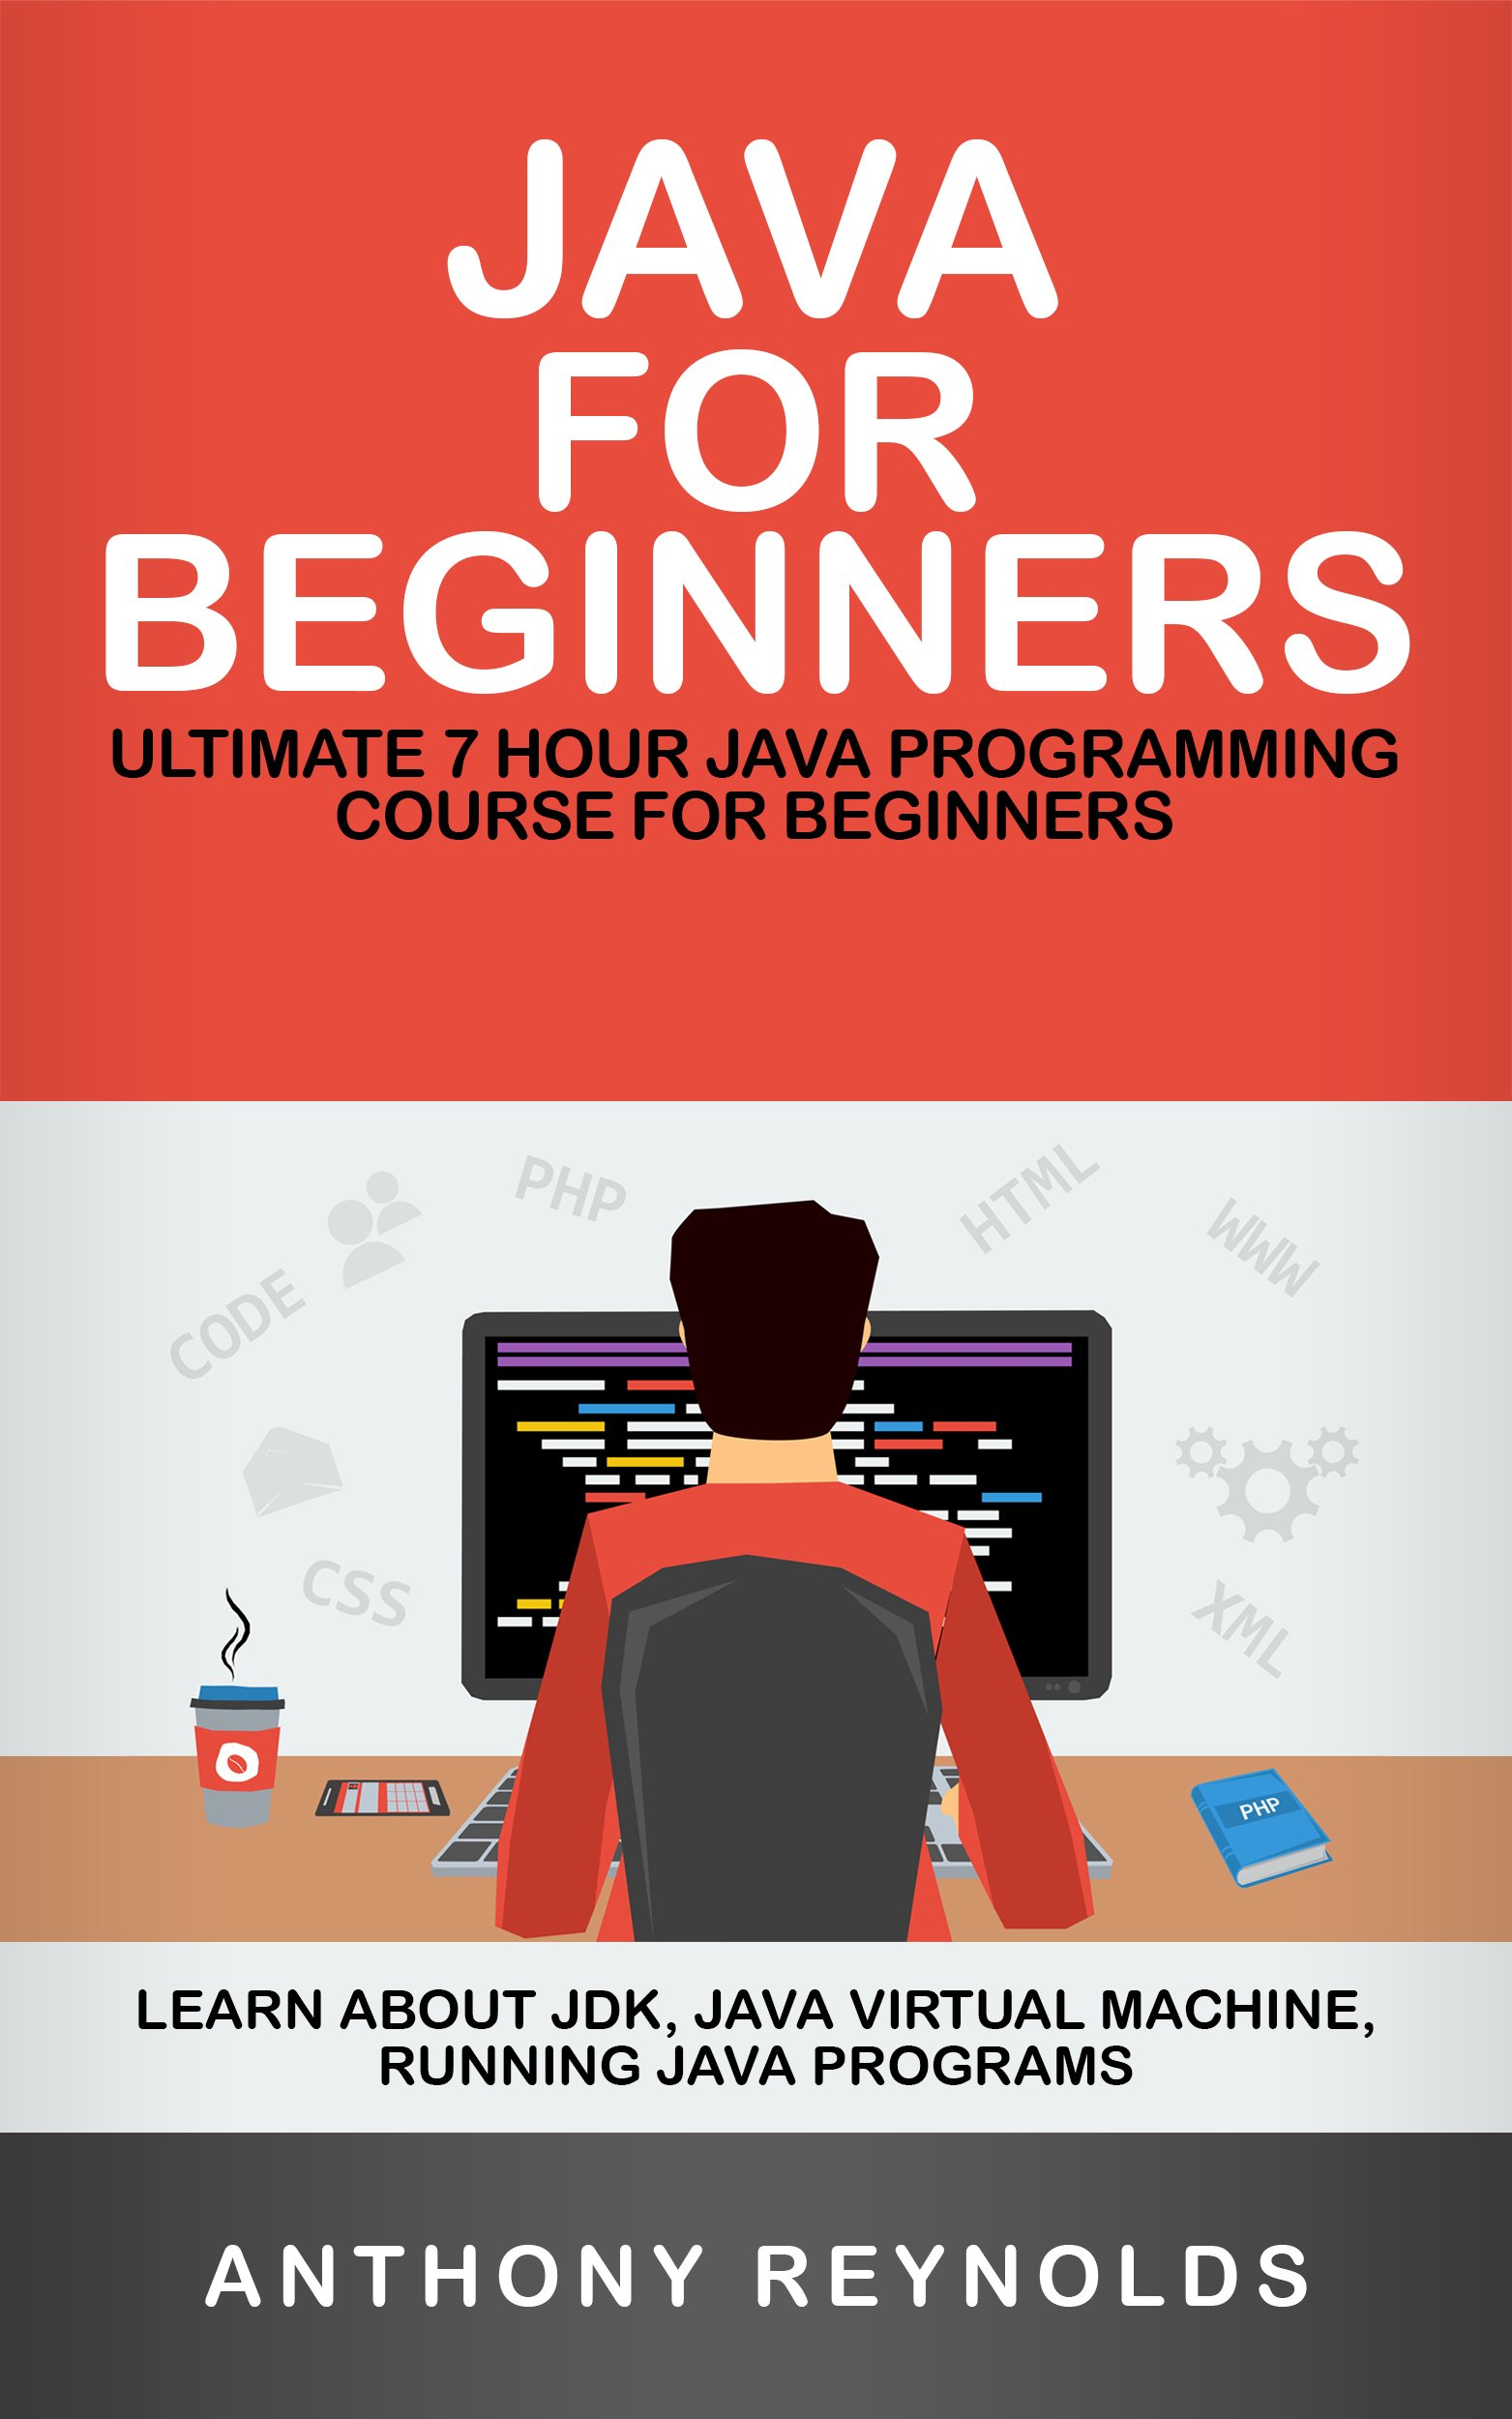 JAVA FOR BEGINNERS: Ultimate 7 Hour JAVA Programming Course For Beginners. Learn About JDK, Java Virtual Machine, Running Java Programs